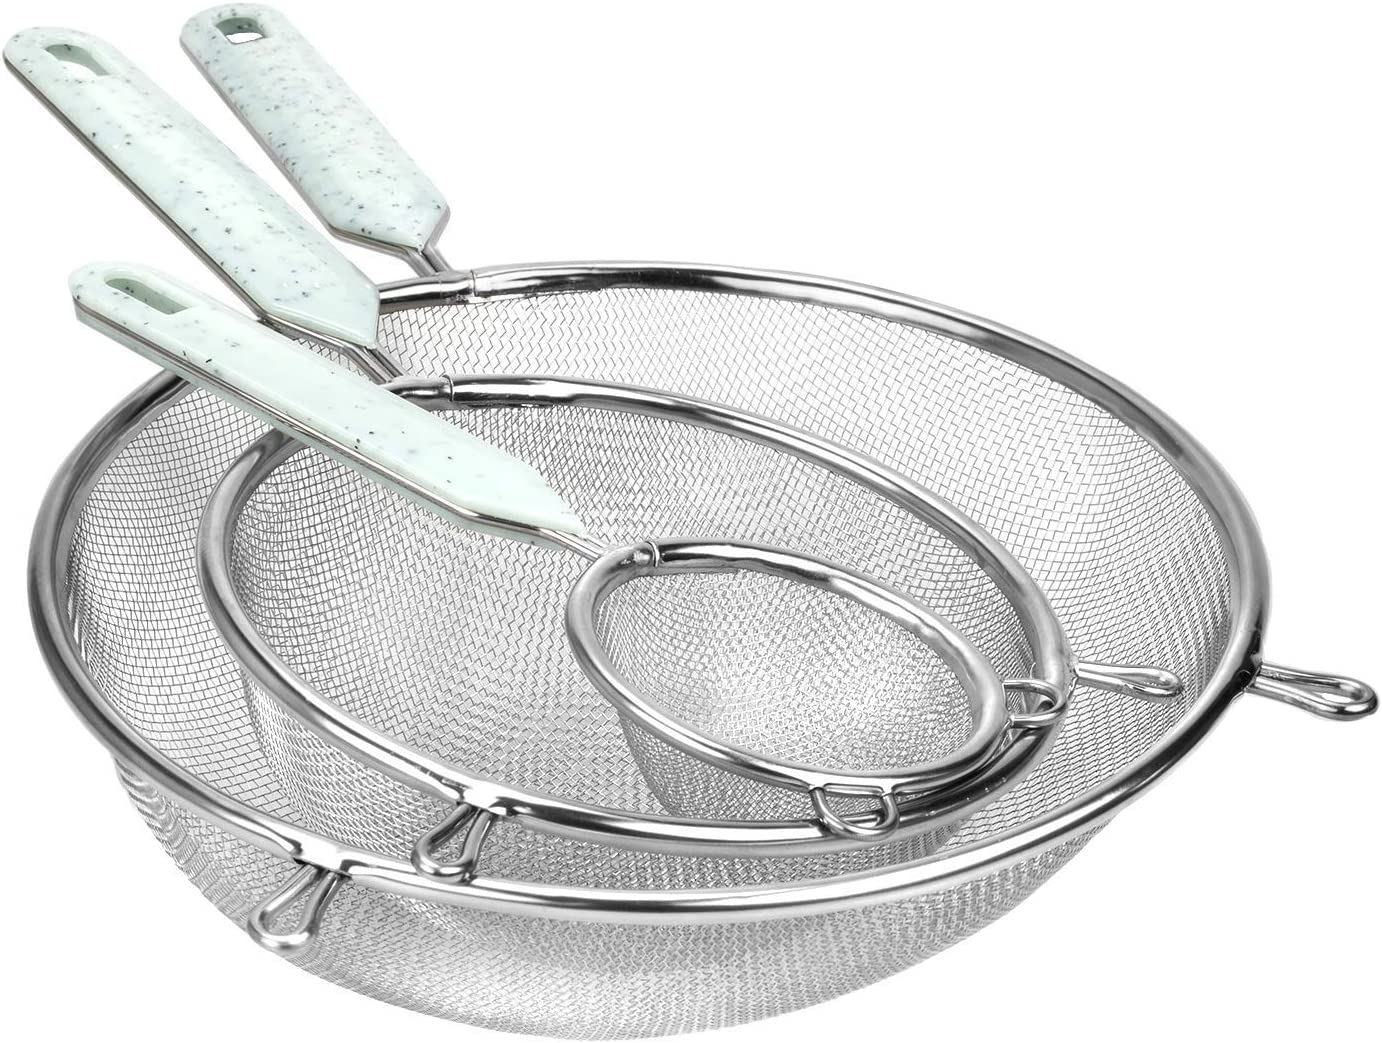 Cook With Color Set of 3 Fine Mesh Strainer, Colander, Sieve, Kitchen Sifter, Skimmer, Stainless Steel Strainer, Small Strainer, Medium and Large Mesh Strainer with Plastic Handles (Mint))